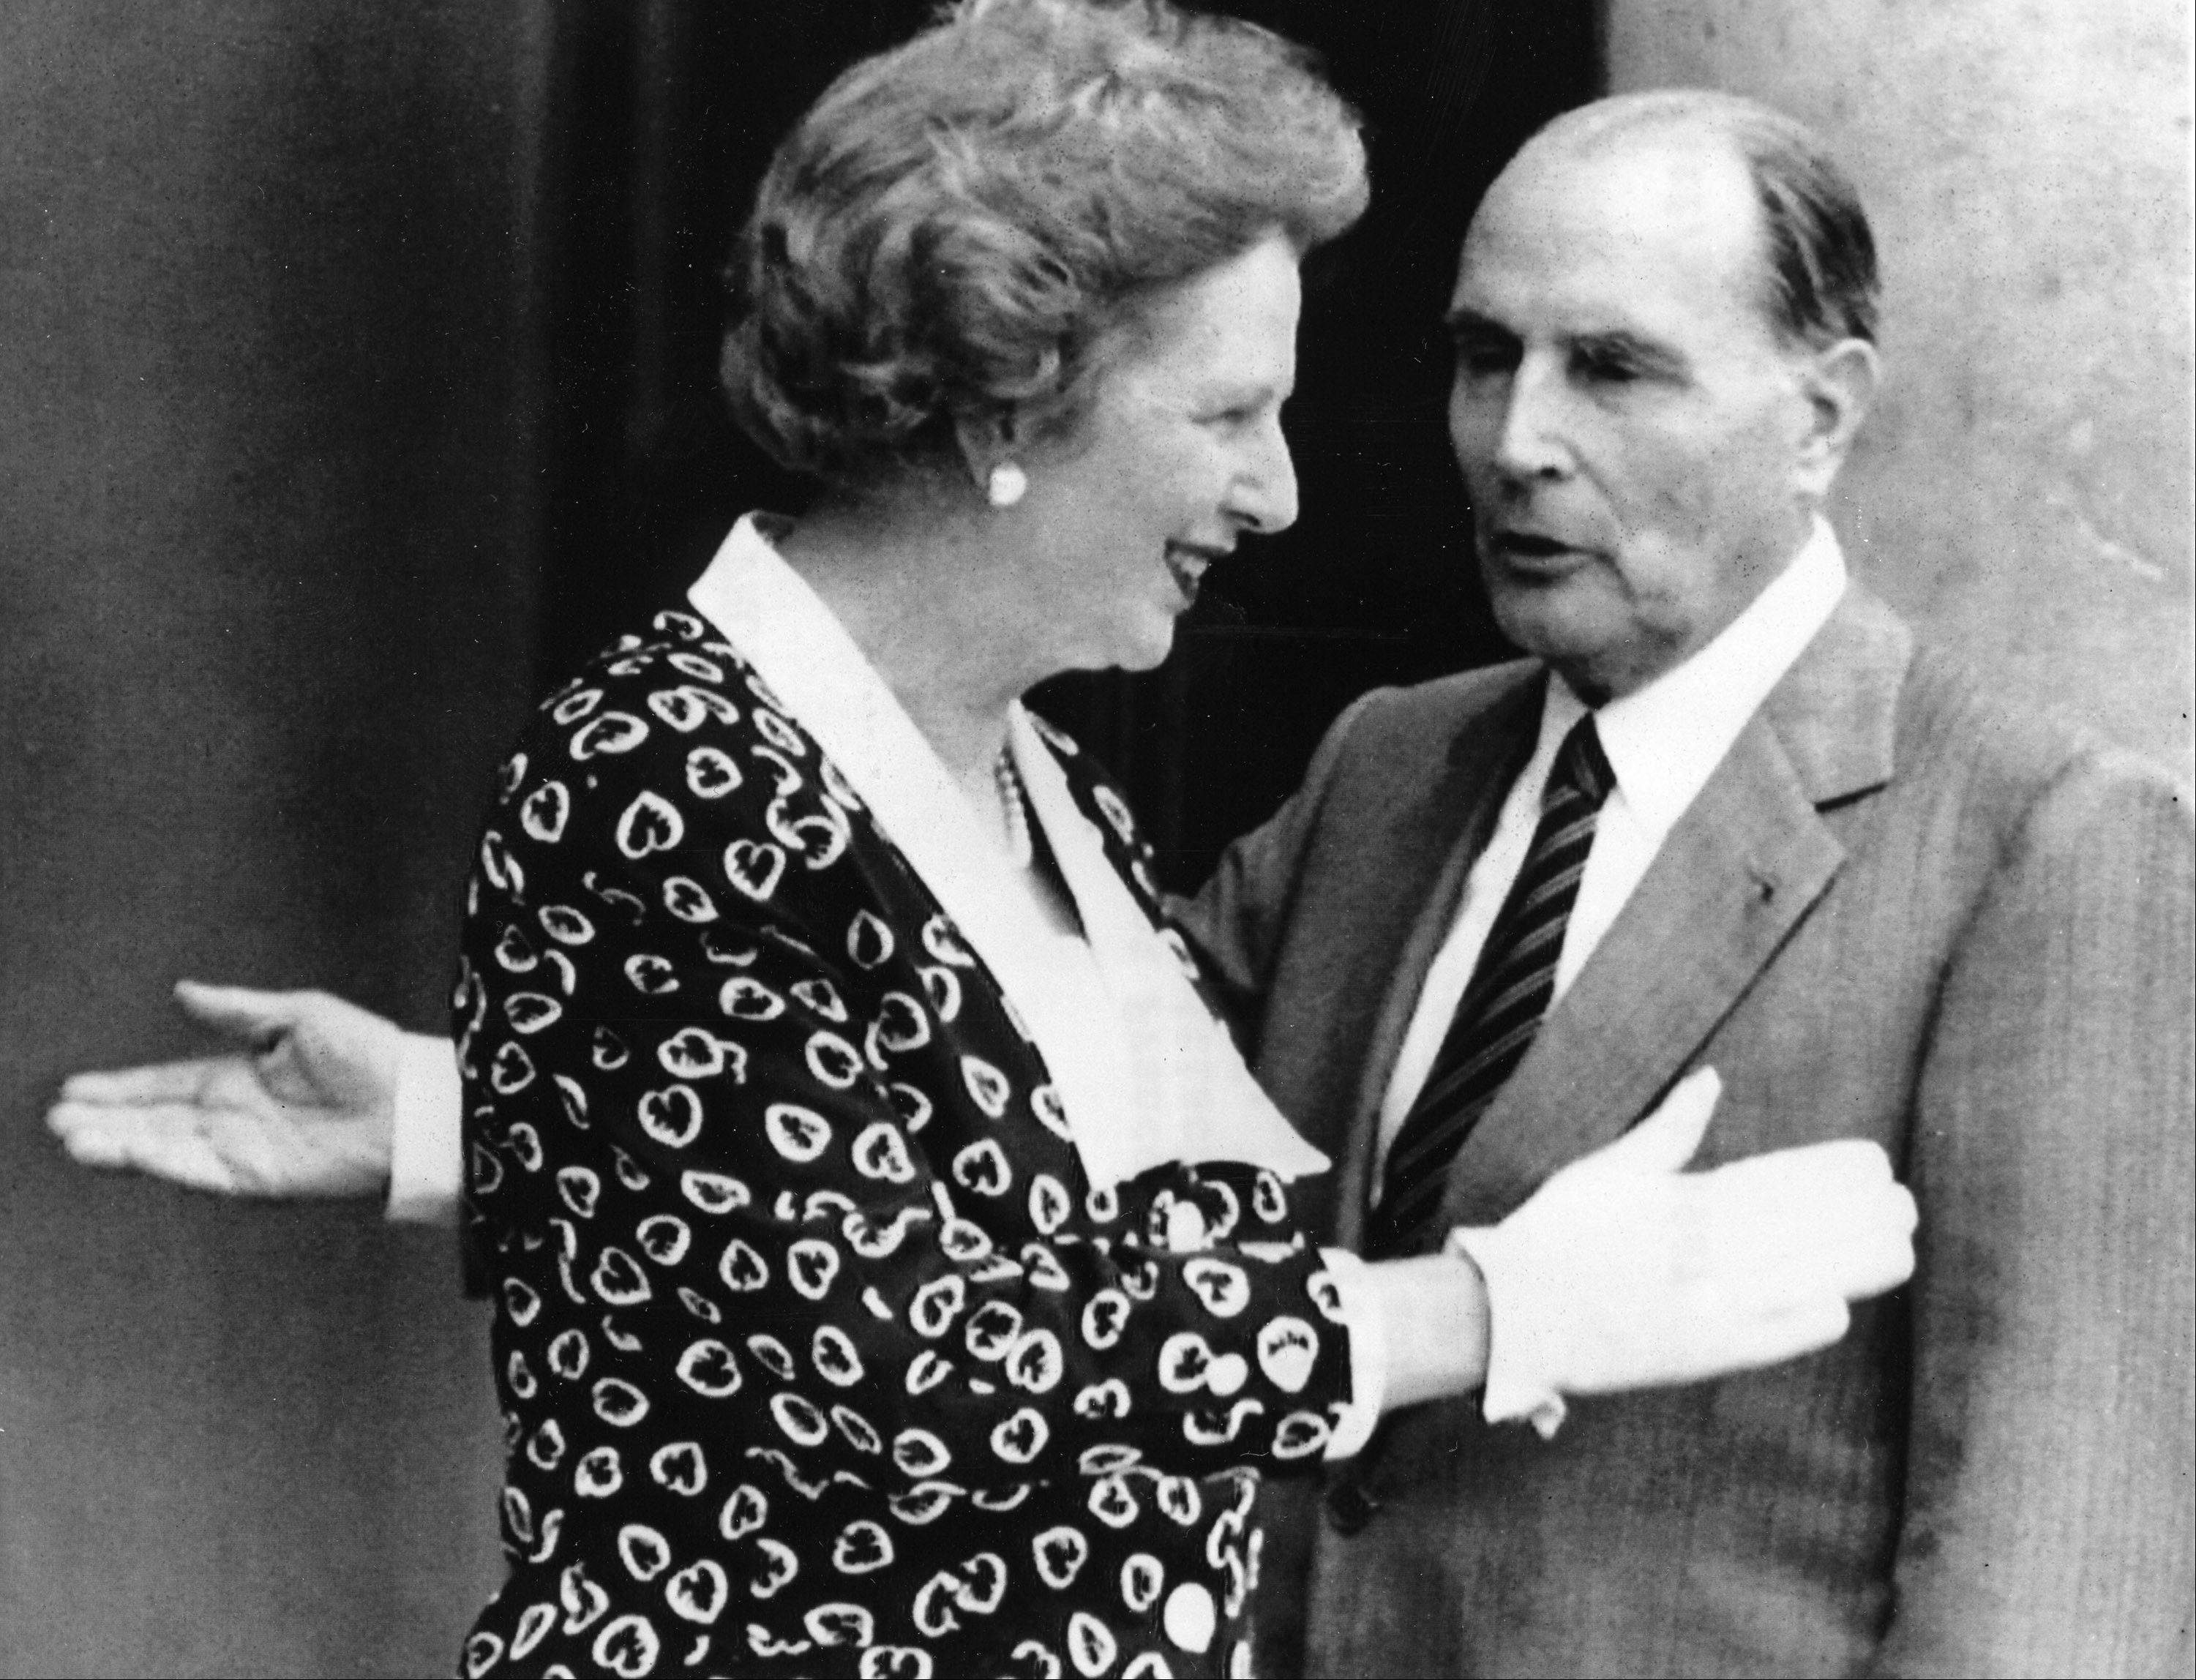 This is a July 29, 1987 file photo of French President Francois Mitterrand and his guest British Prime Minister Margaret Thatcher aa they gesture in front of the Elysee Palace in Paris, France. Margaret Thatcher�s former spokesman, Tim Bell, said that the former prime minister had died Monday April 8, 2013 of a stroke. She was 87.